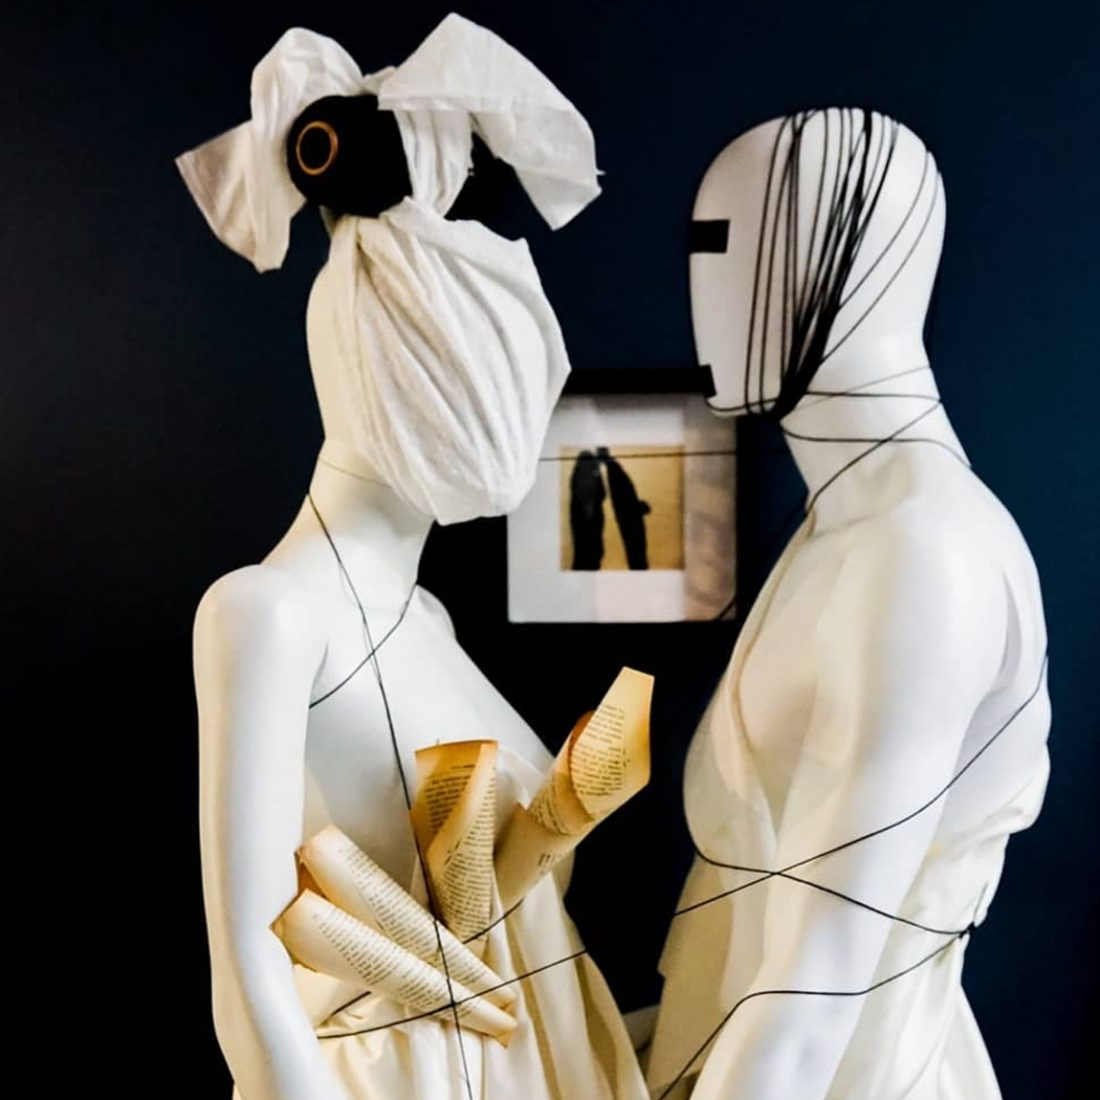 Artwork of two mannequins